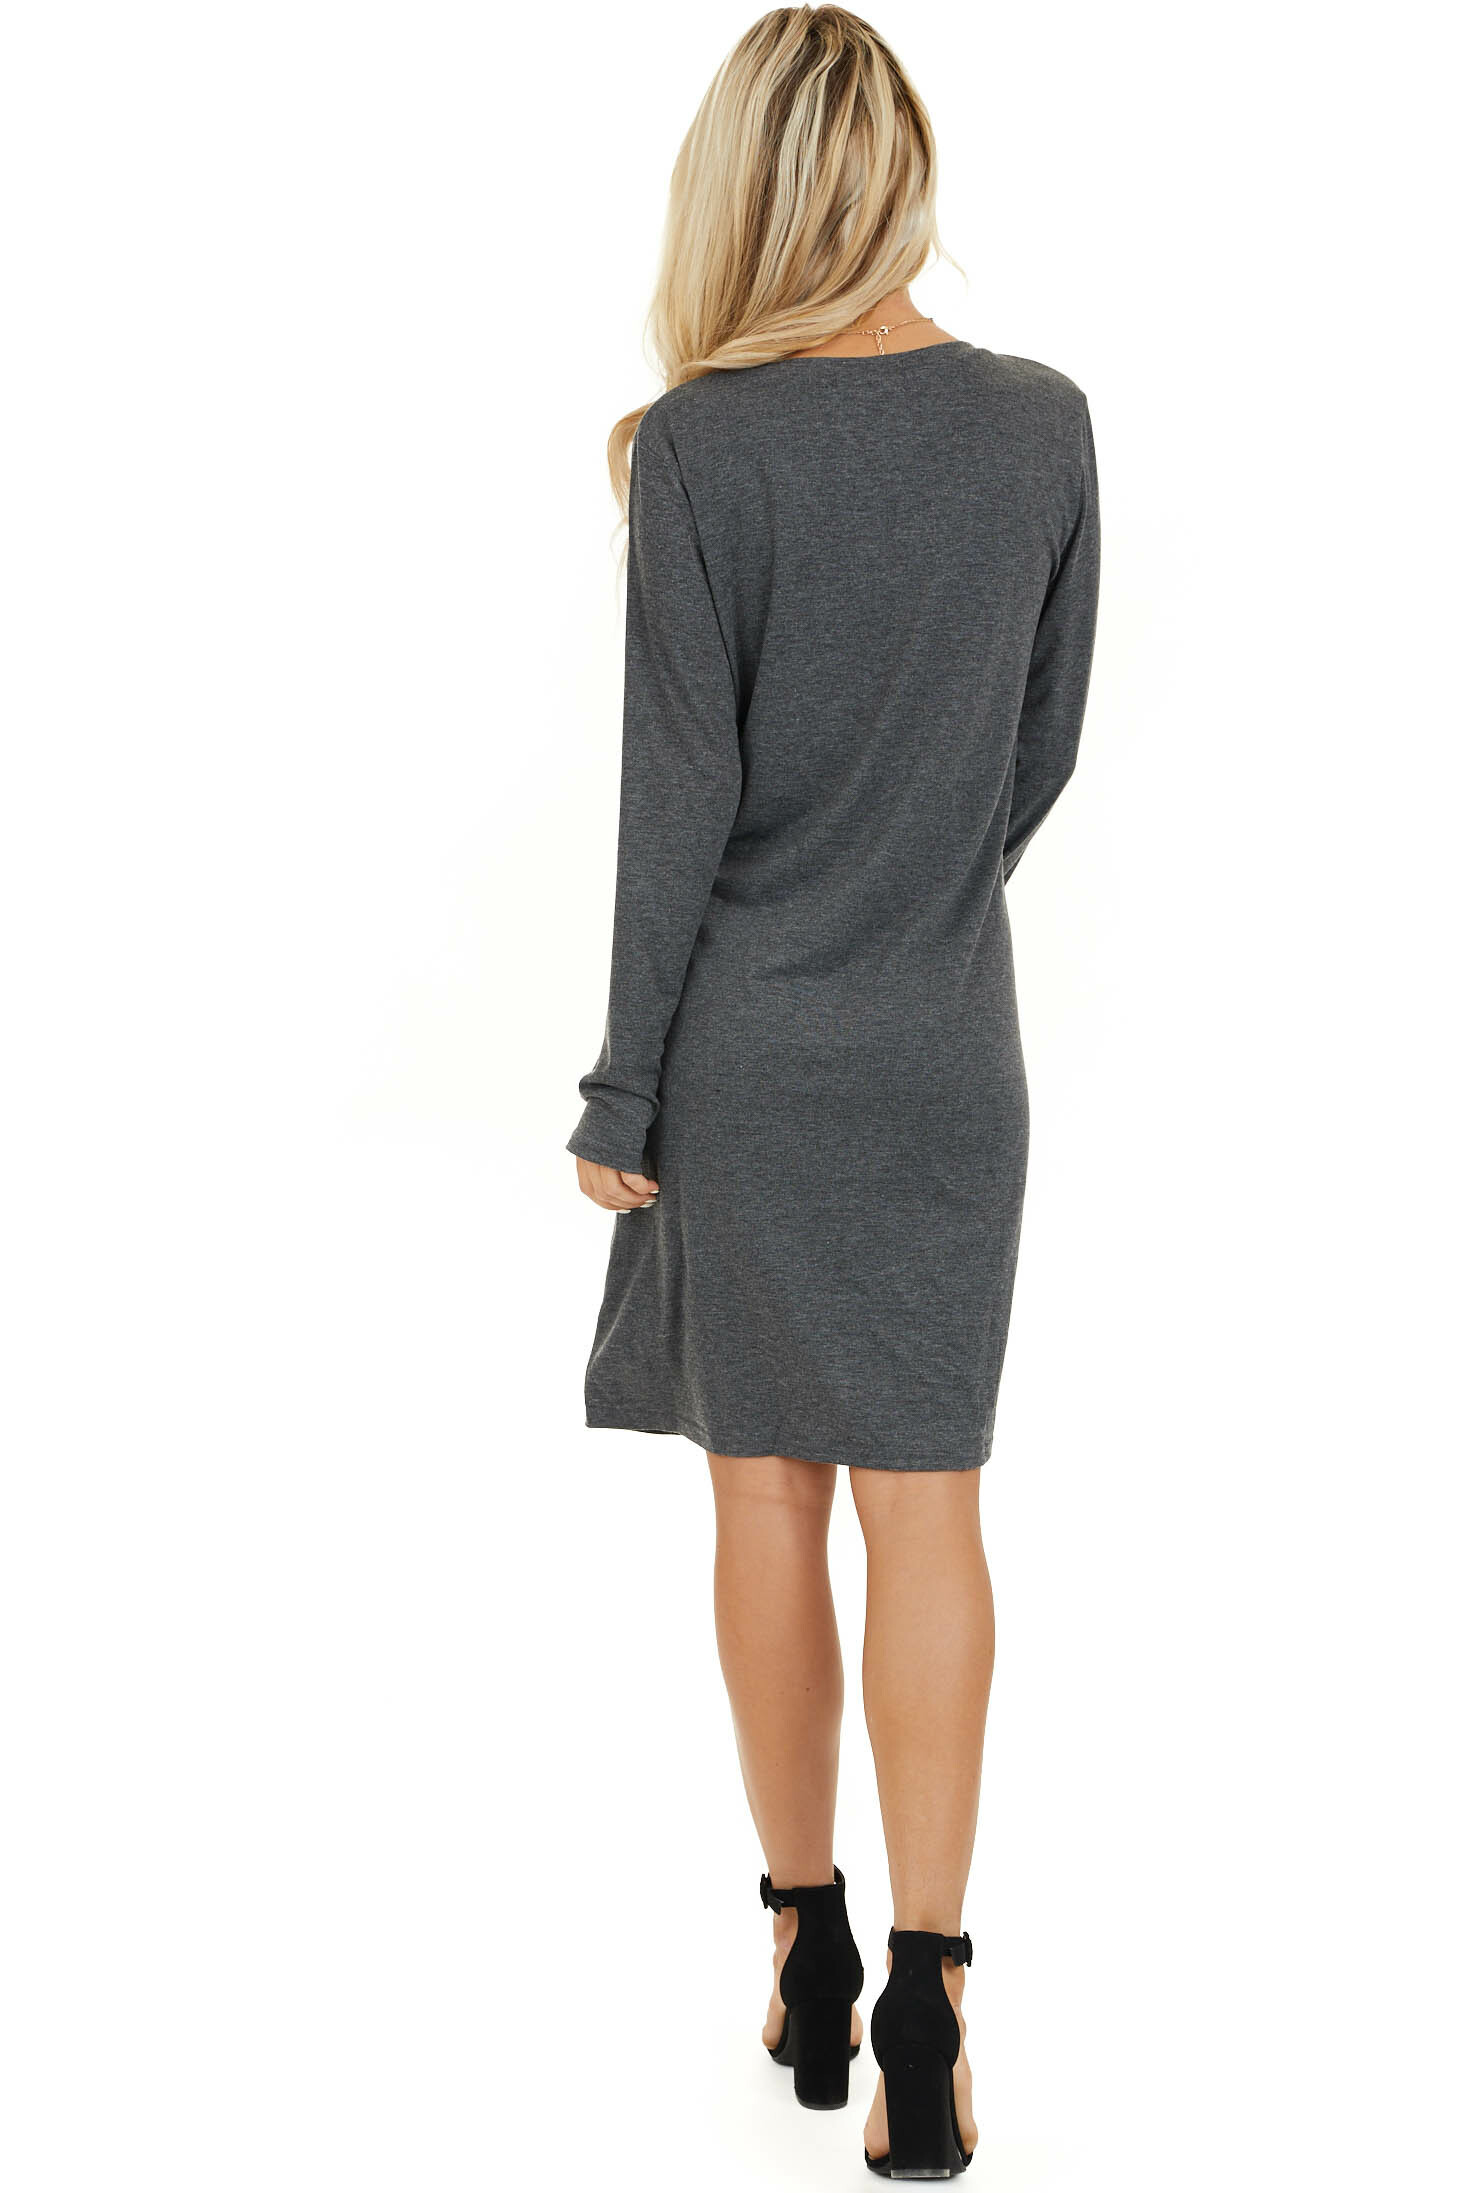 Charcoal Long Sleeve V Neck Dress with Hemline Twist Detail back full body